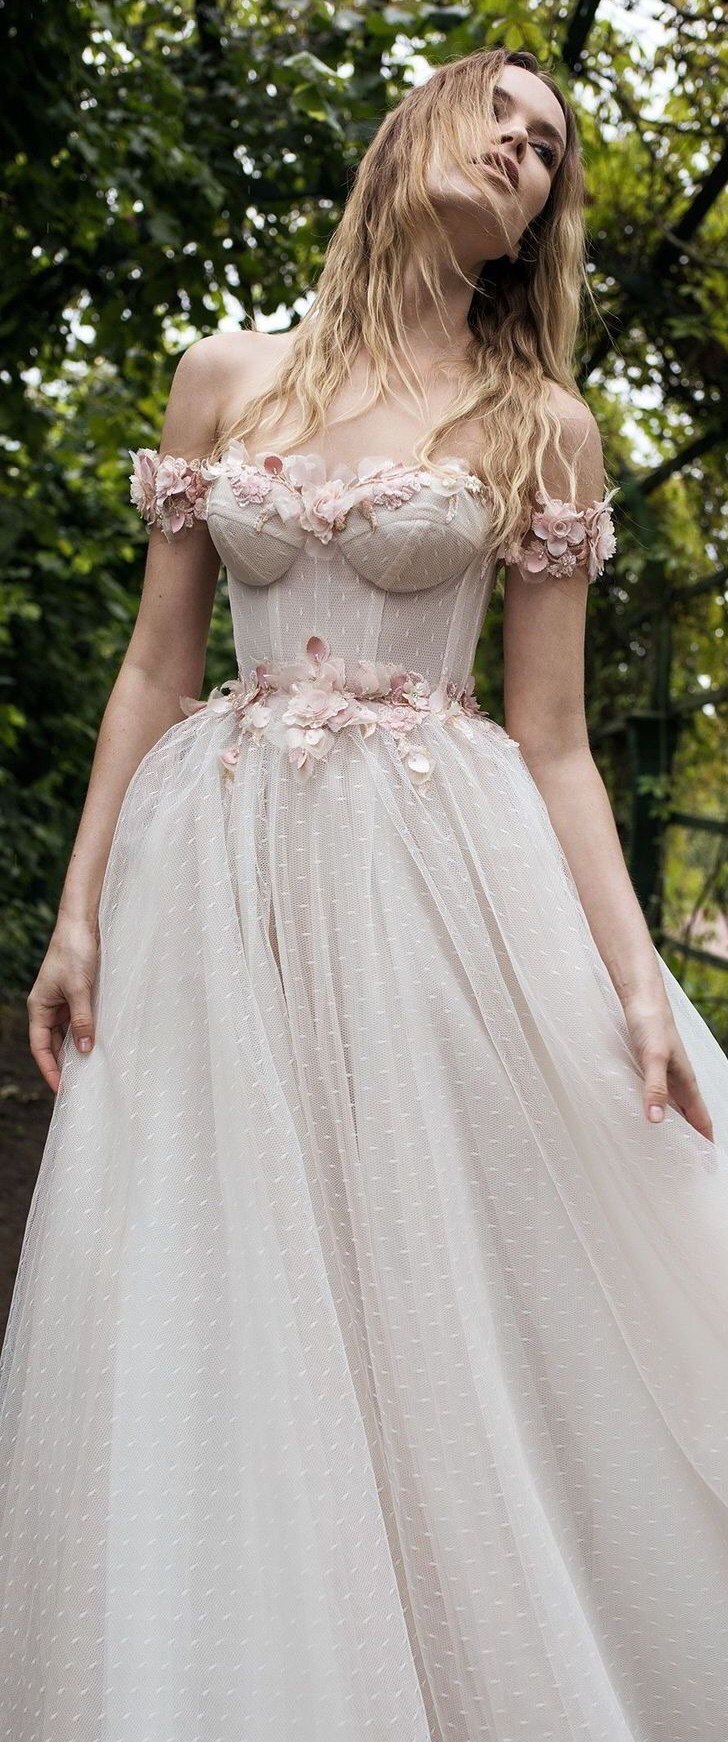 Lian Rokman off the shoulder wedding dress